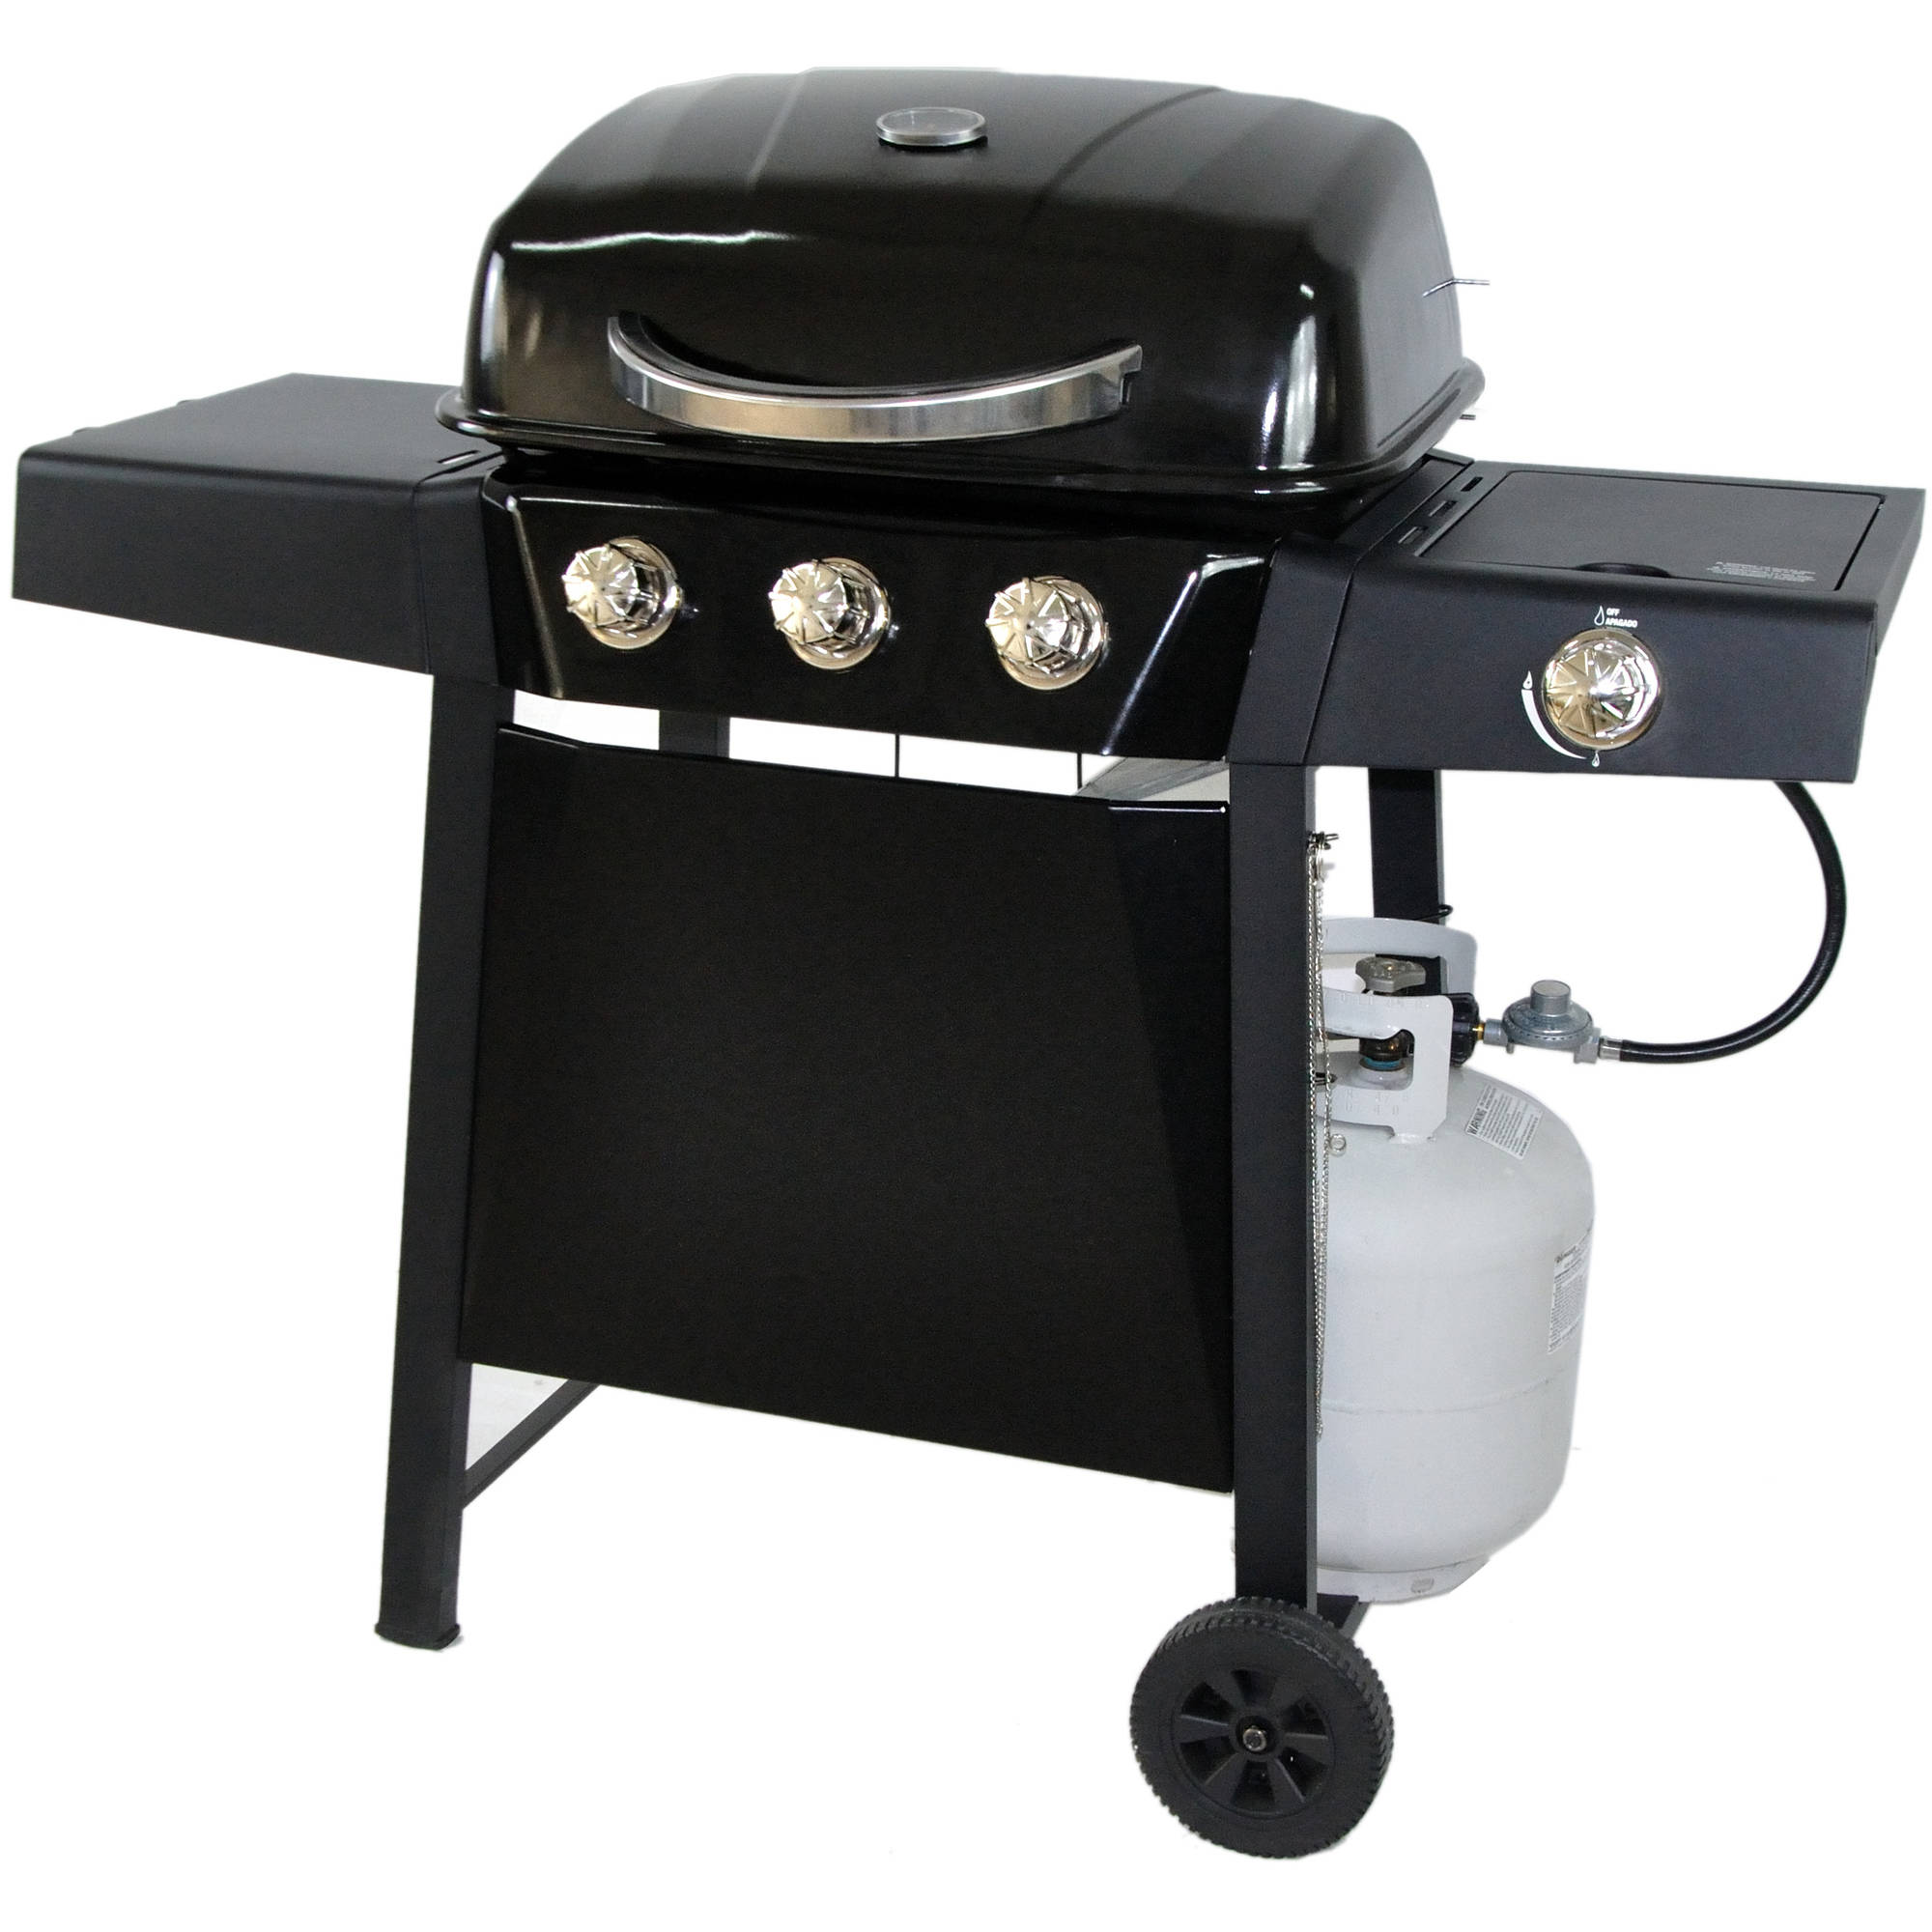 RevoAce 3-Burner LP Gas Grill with Side Burner, Black by